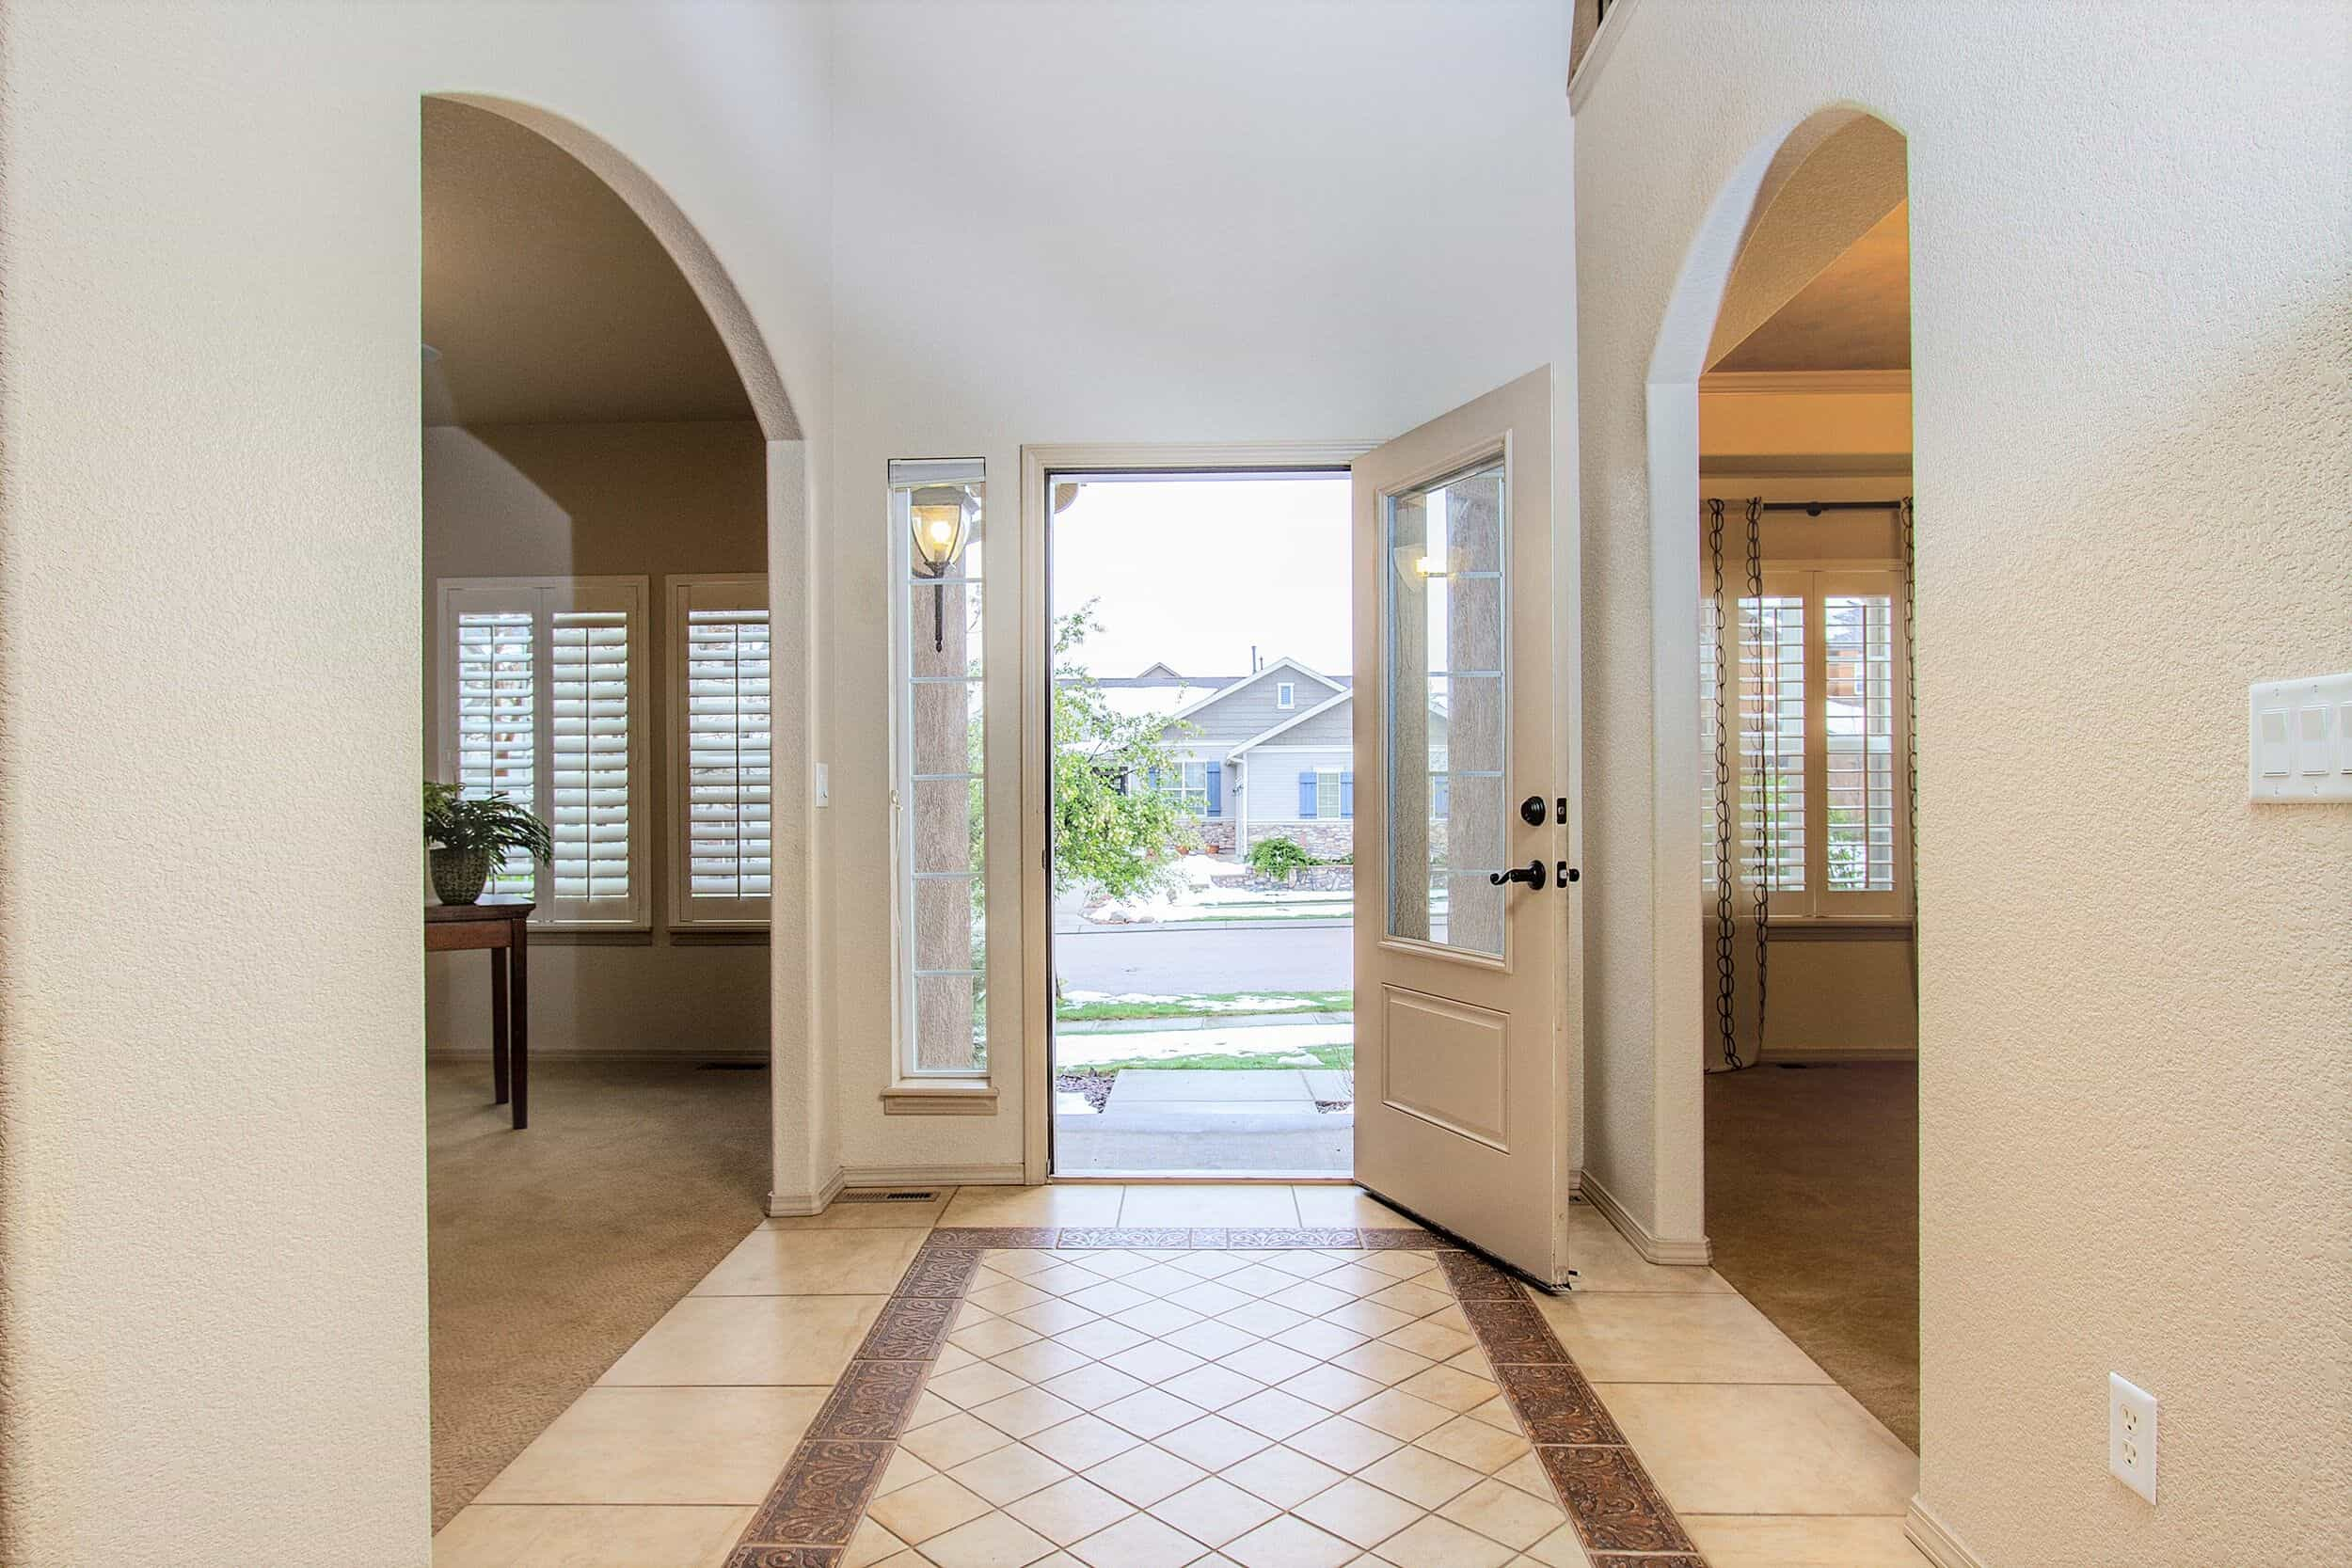 Soaring Entry with Decorative Tile Inset